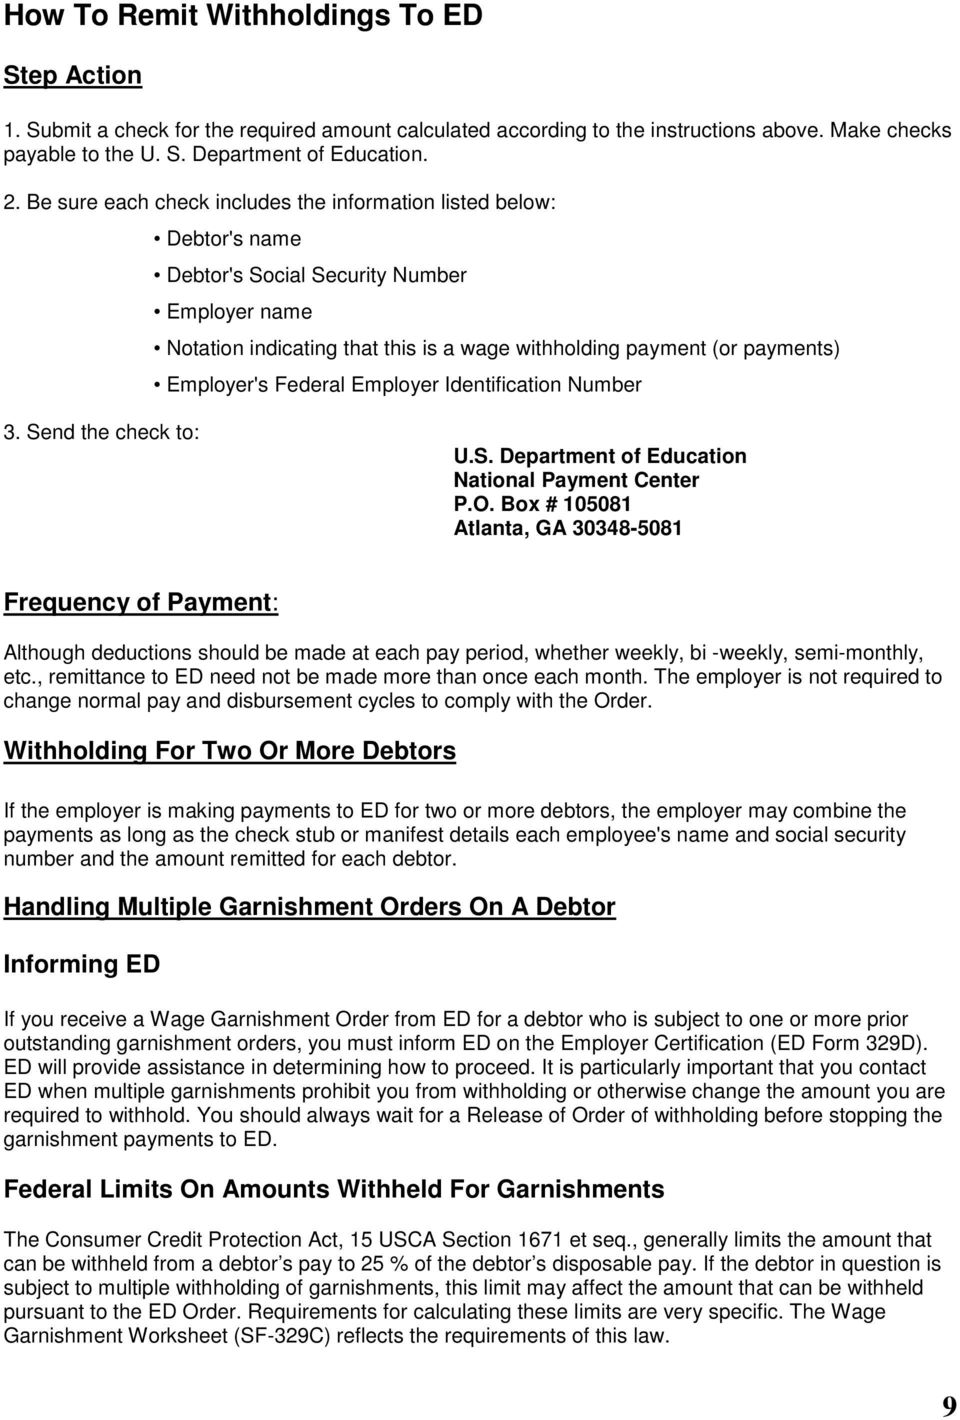 Us department of education employer s garnishment handbook revised employers federal employer identification number 3 send the check to us department of education biocorpaavc Image collections